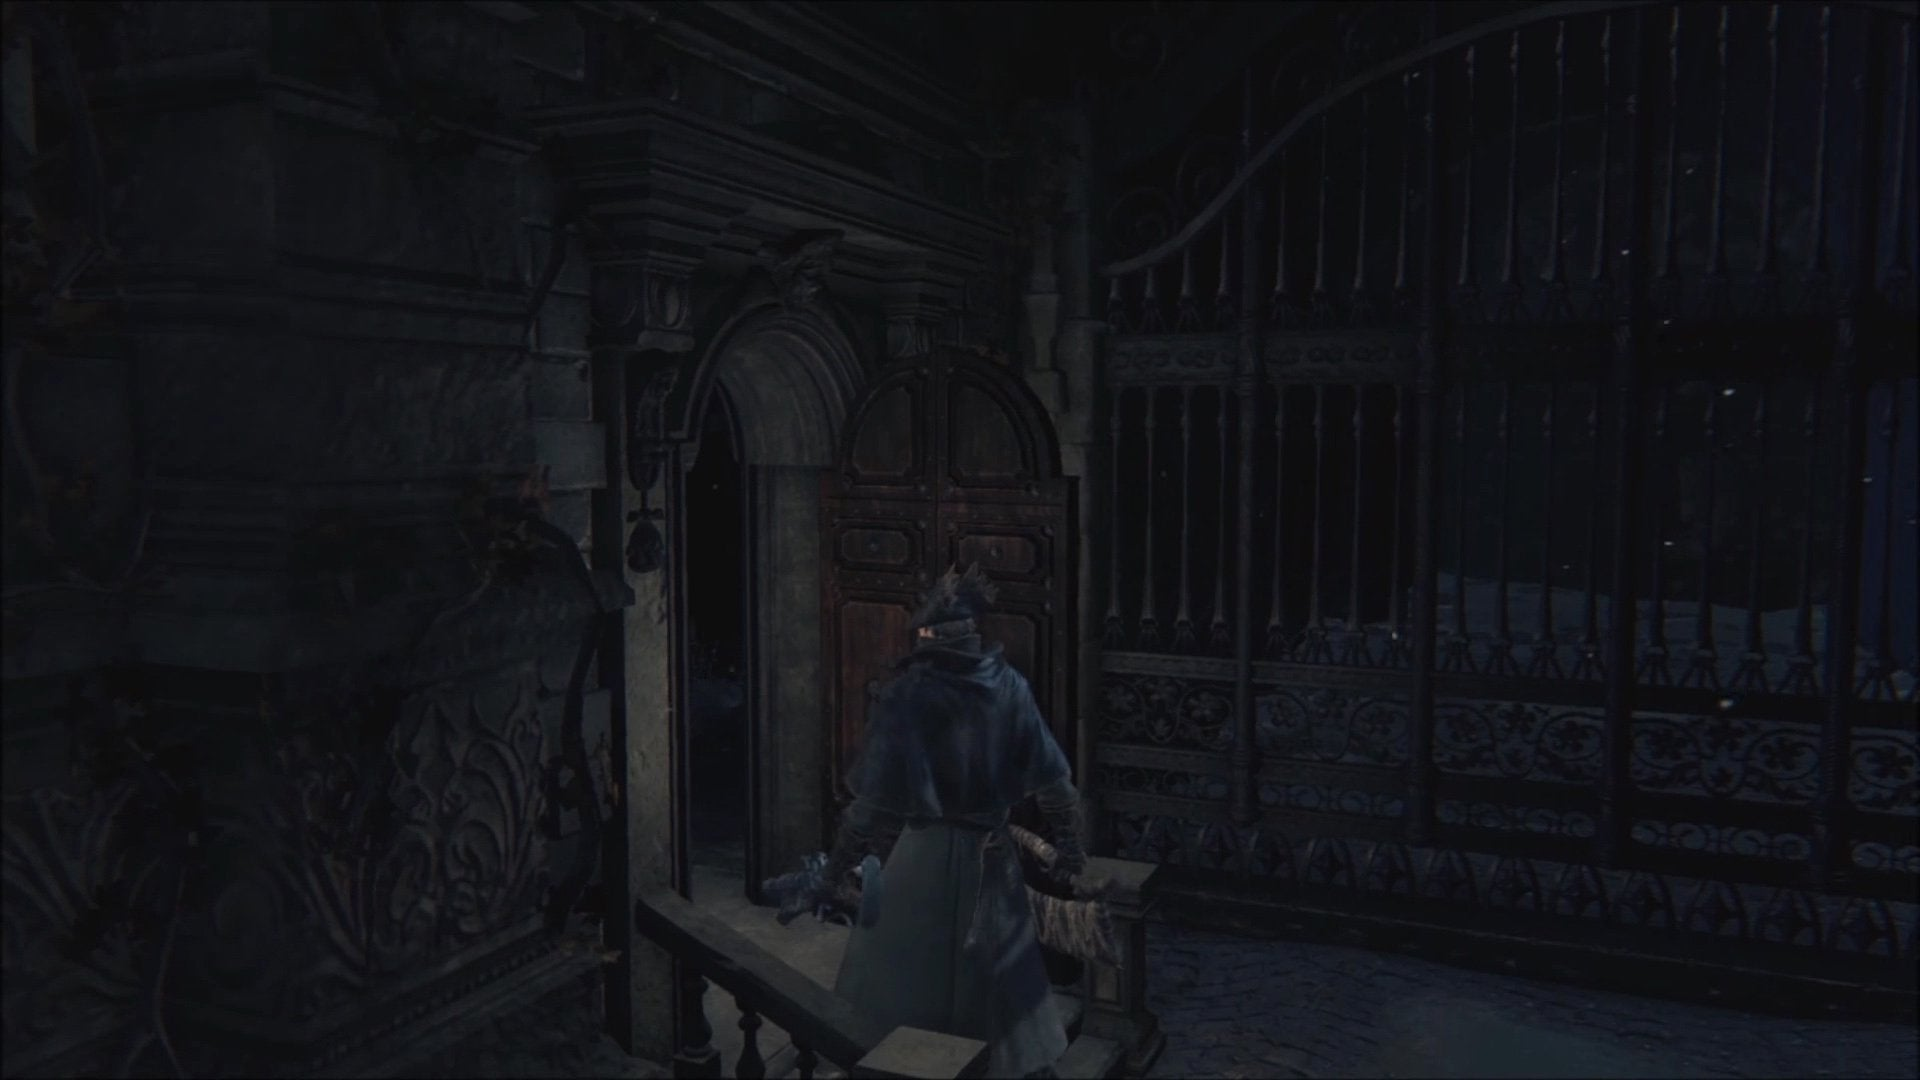 When Bloodborne first launched players quickly discovered a door at the end of the bridge behind the Cleric Beast. Thereu0027s no way to open the door ... & The Little Mystery Behind An Unused Door In Bloodborne